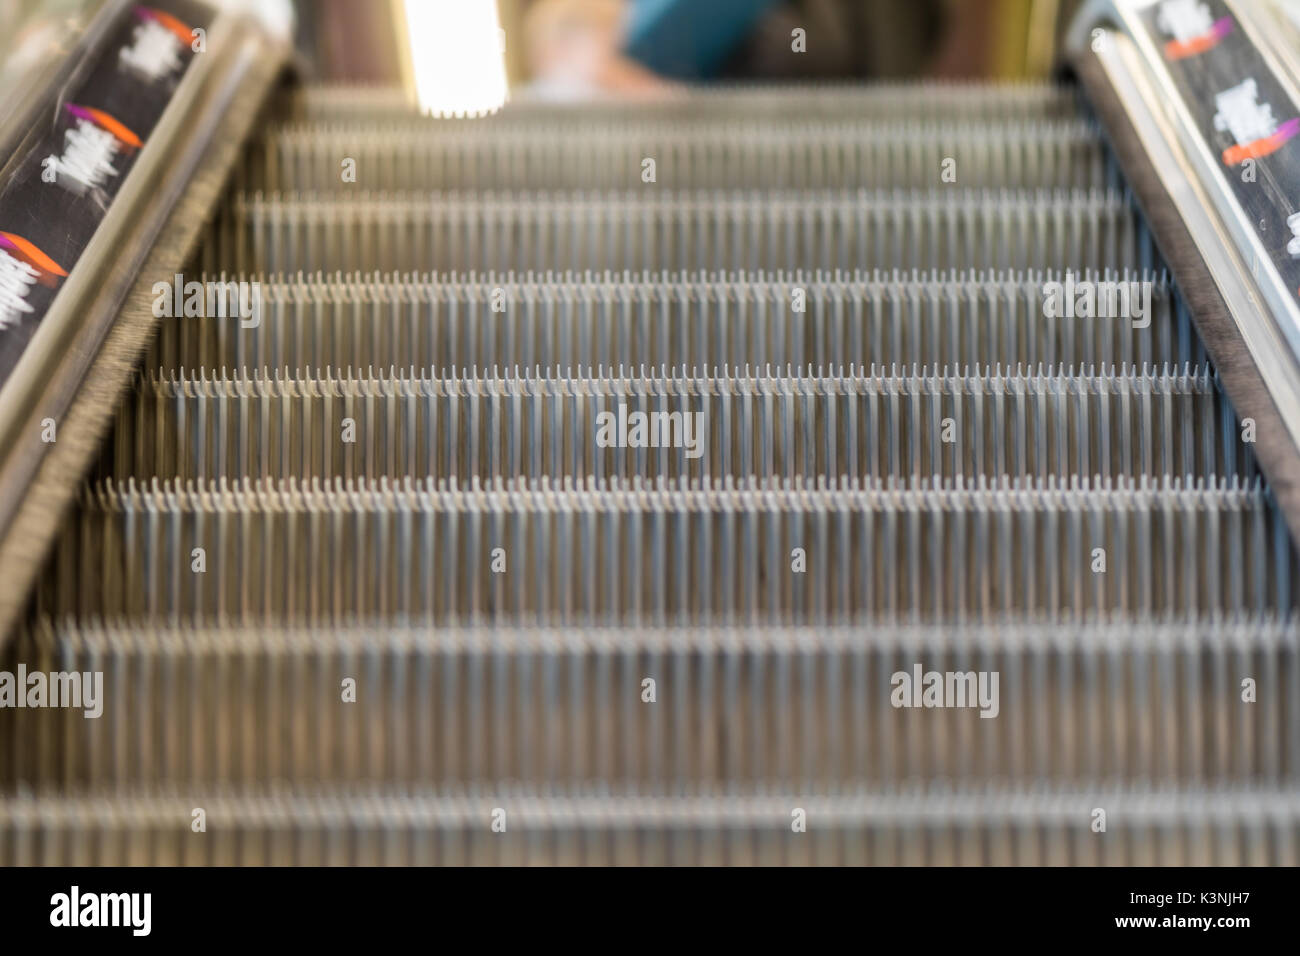 Abstract blurred Image of escalator in shopping mall store for background usage. - Stock Image